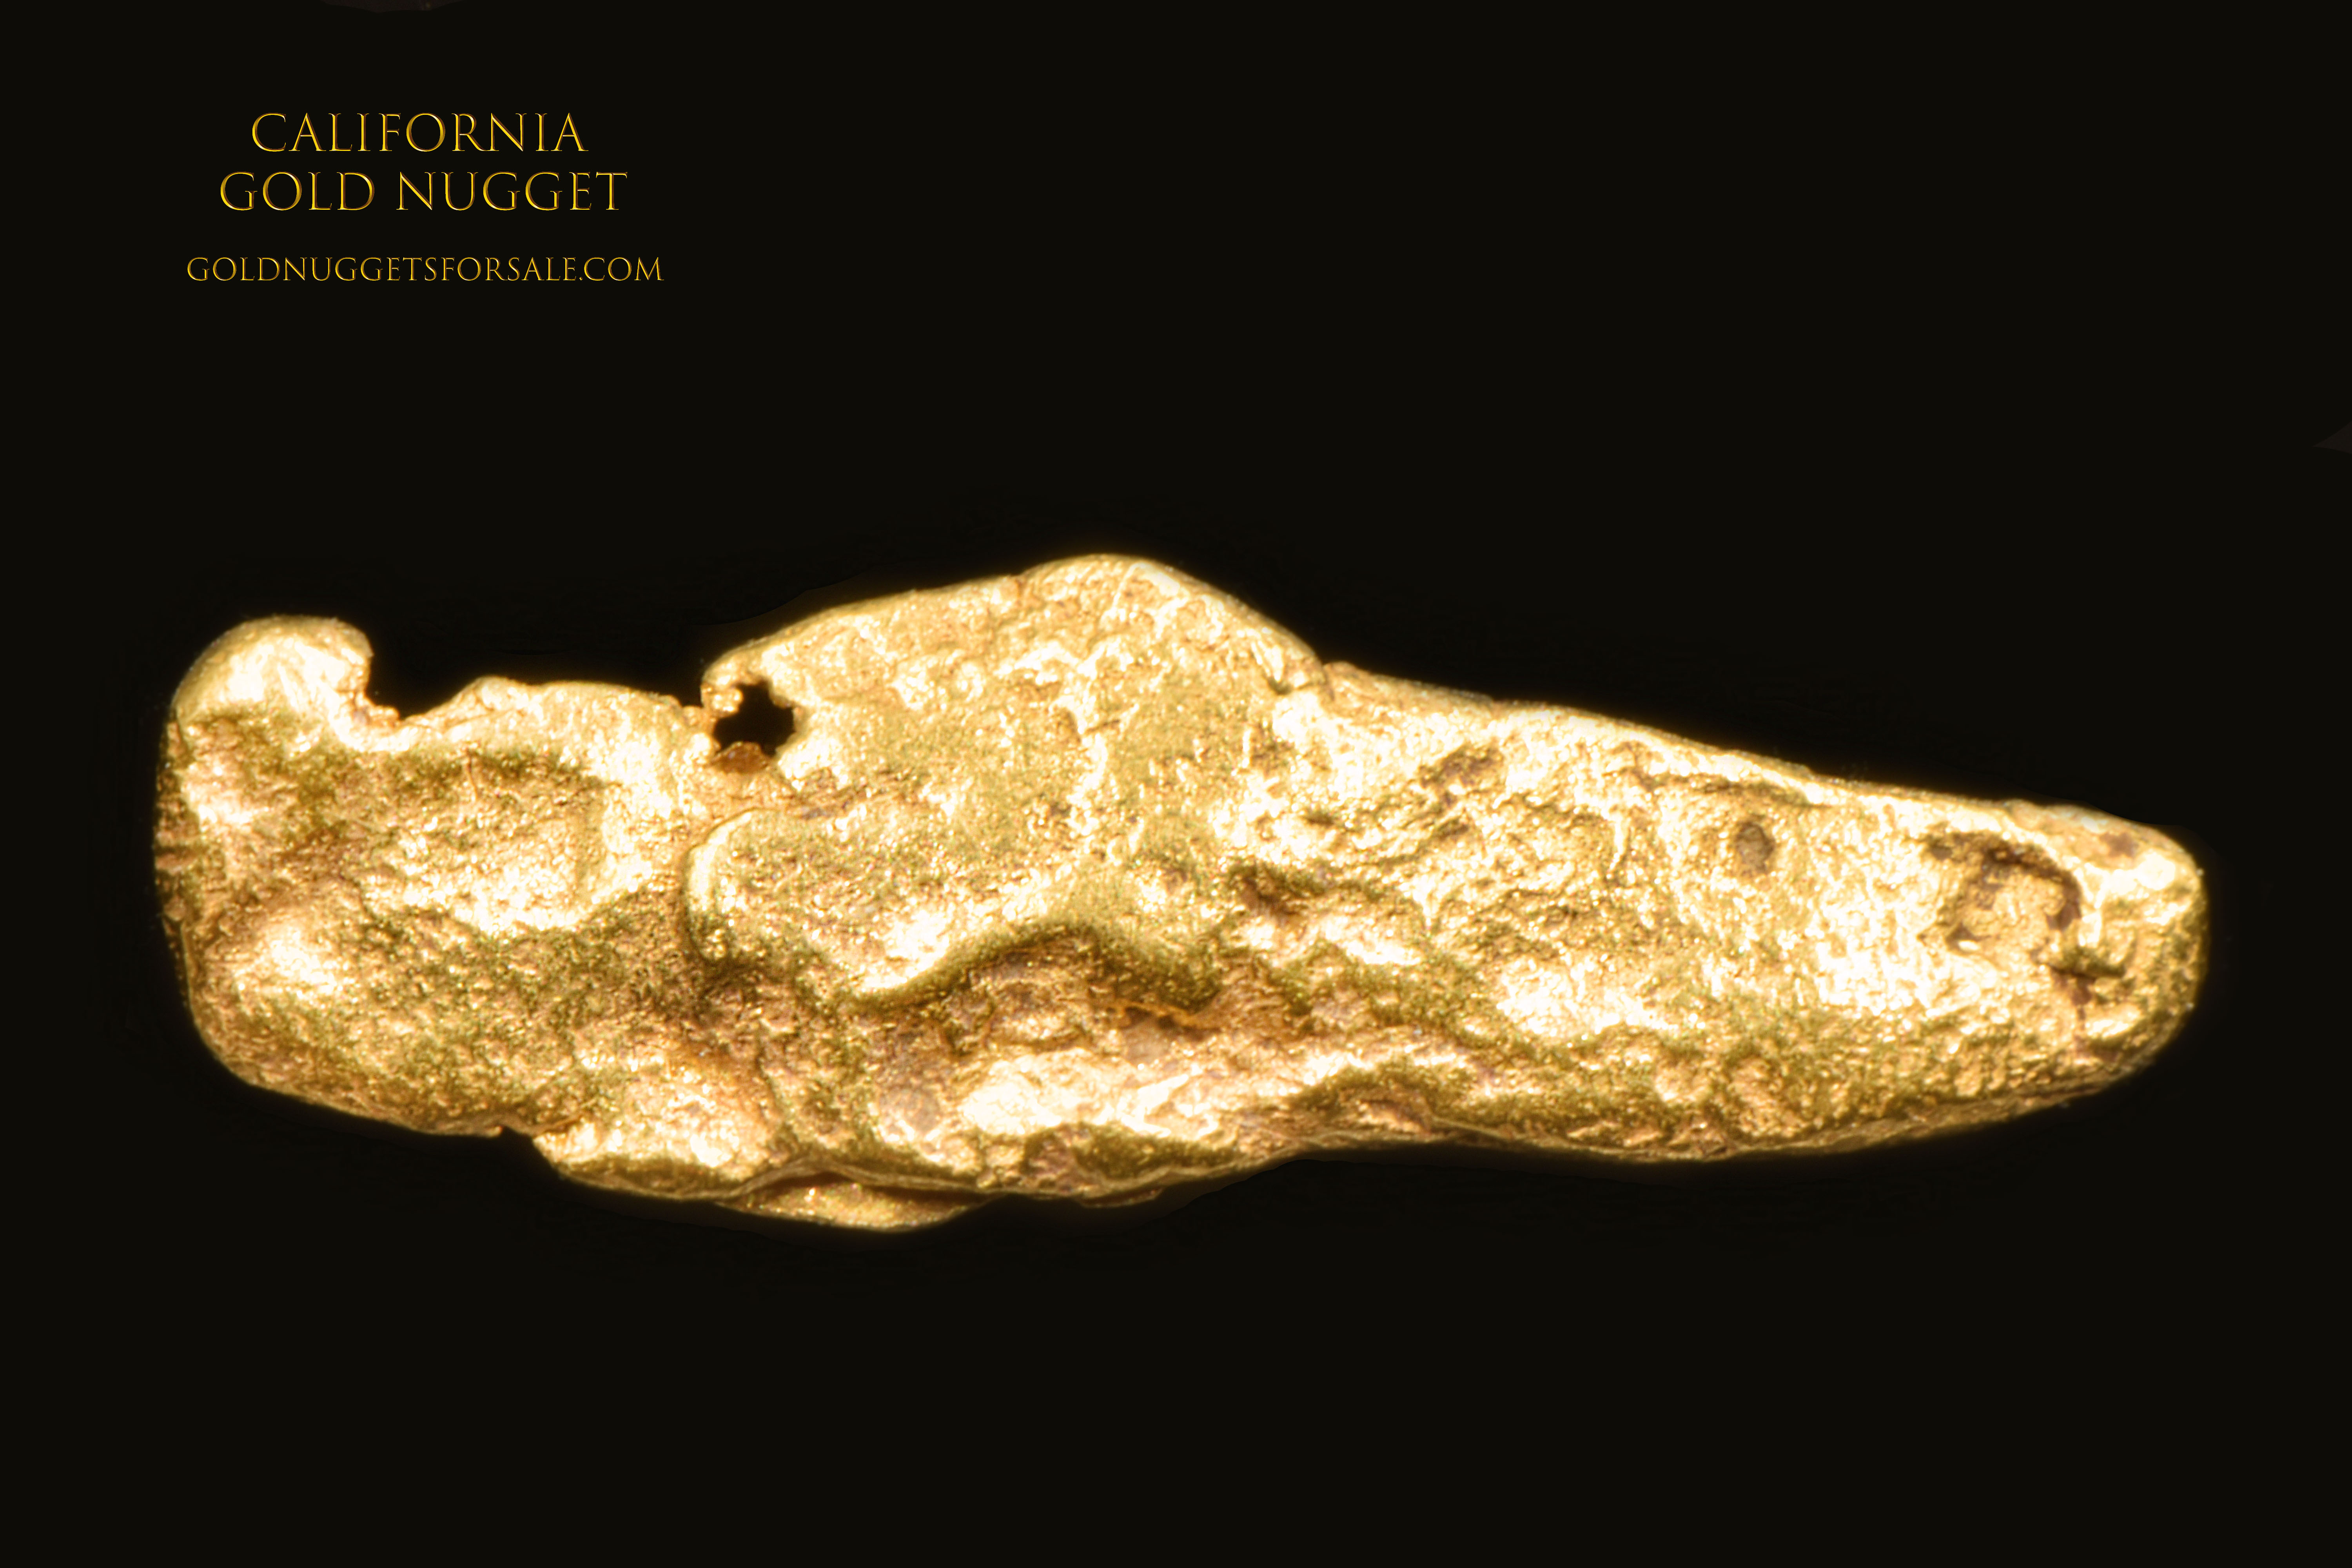 Native California -Jewelry Grade Gold Nugget